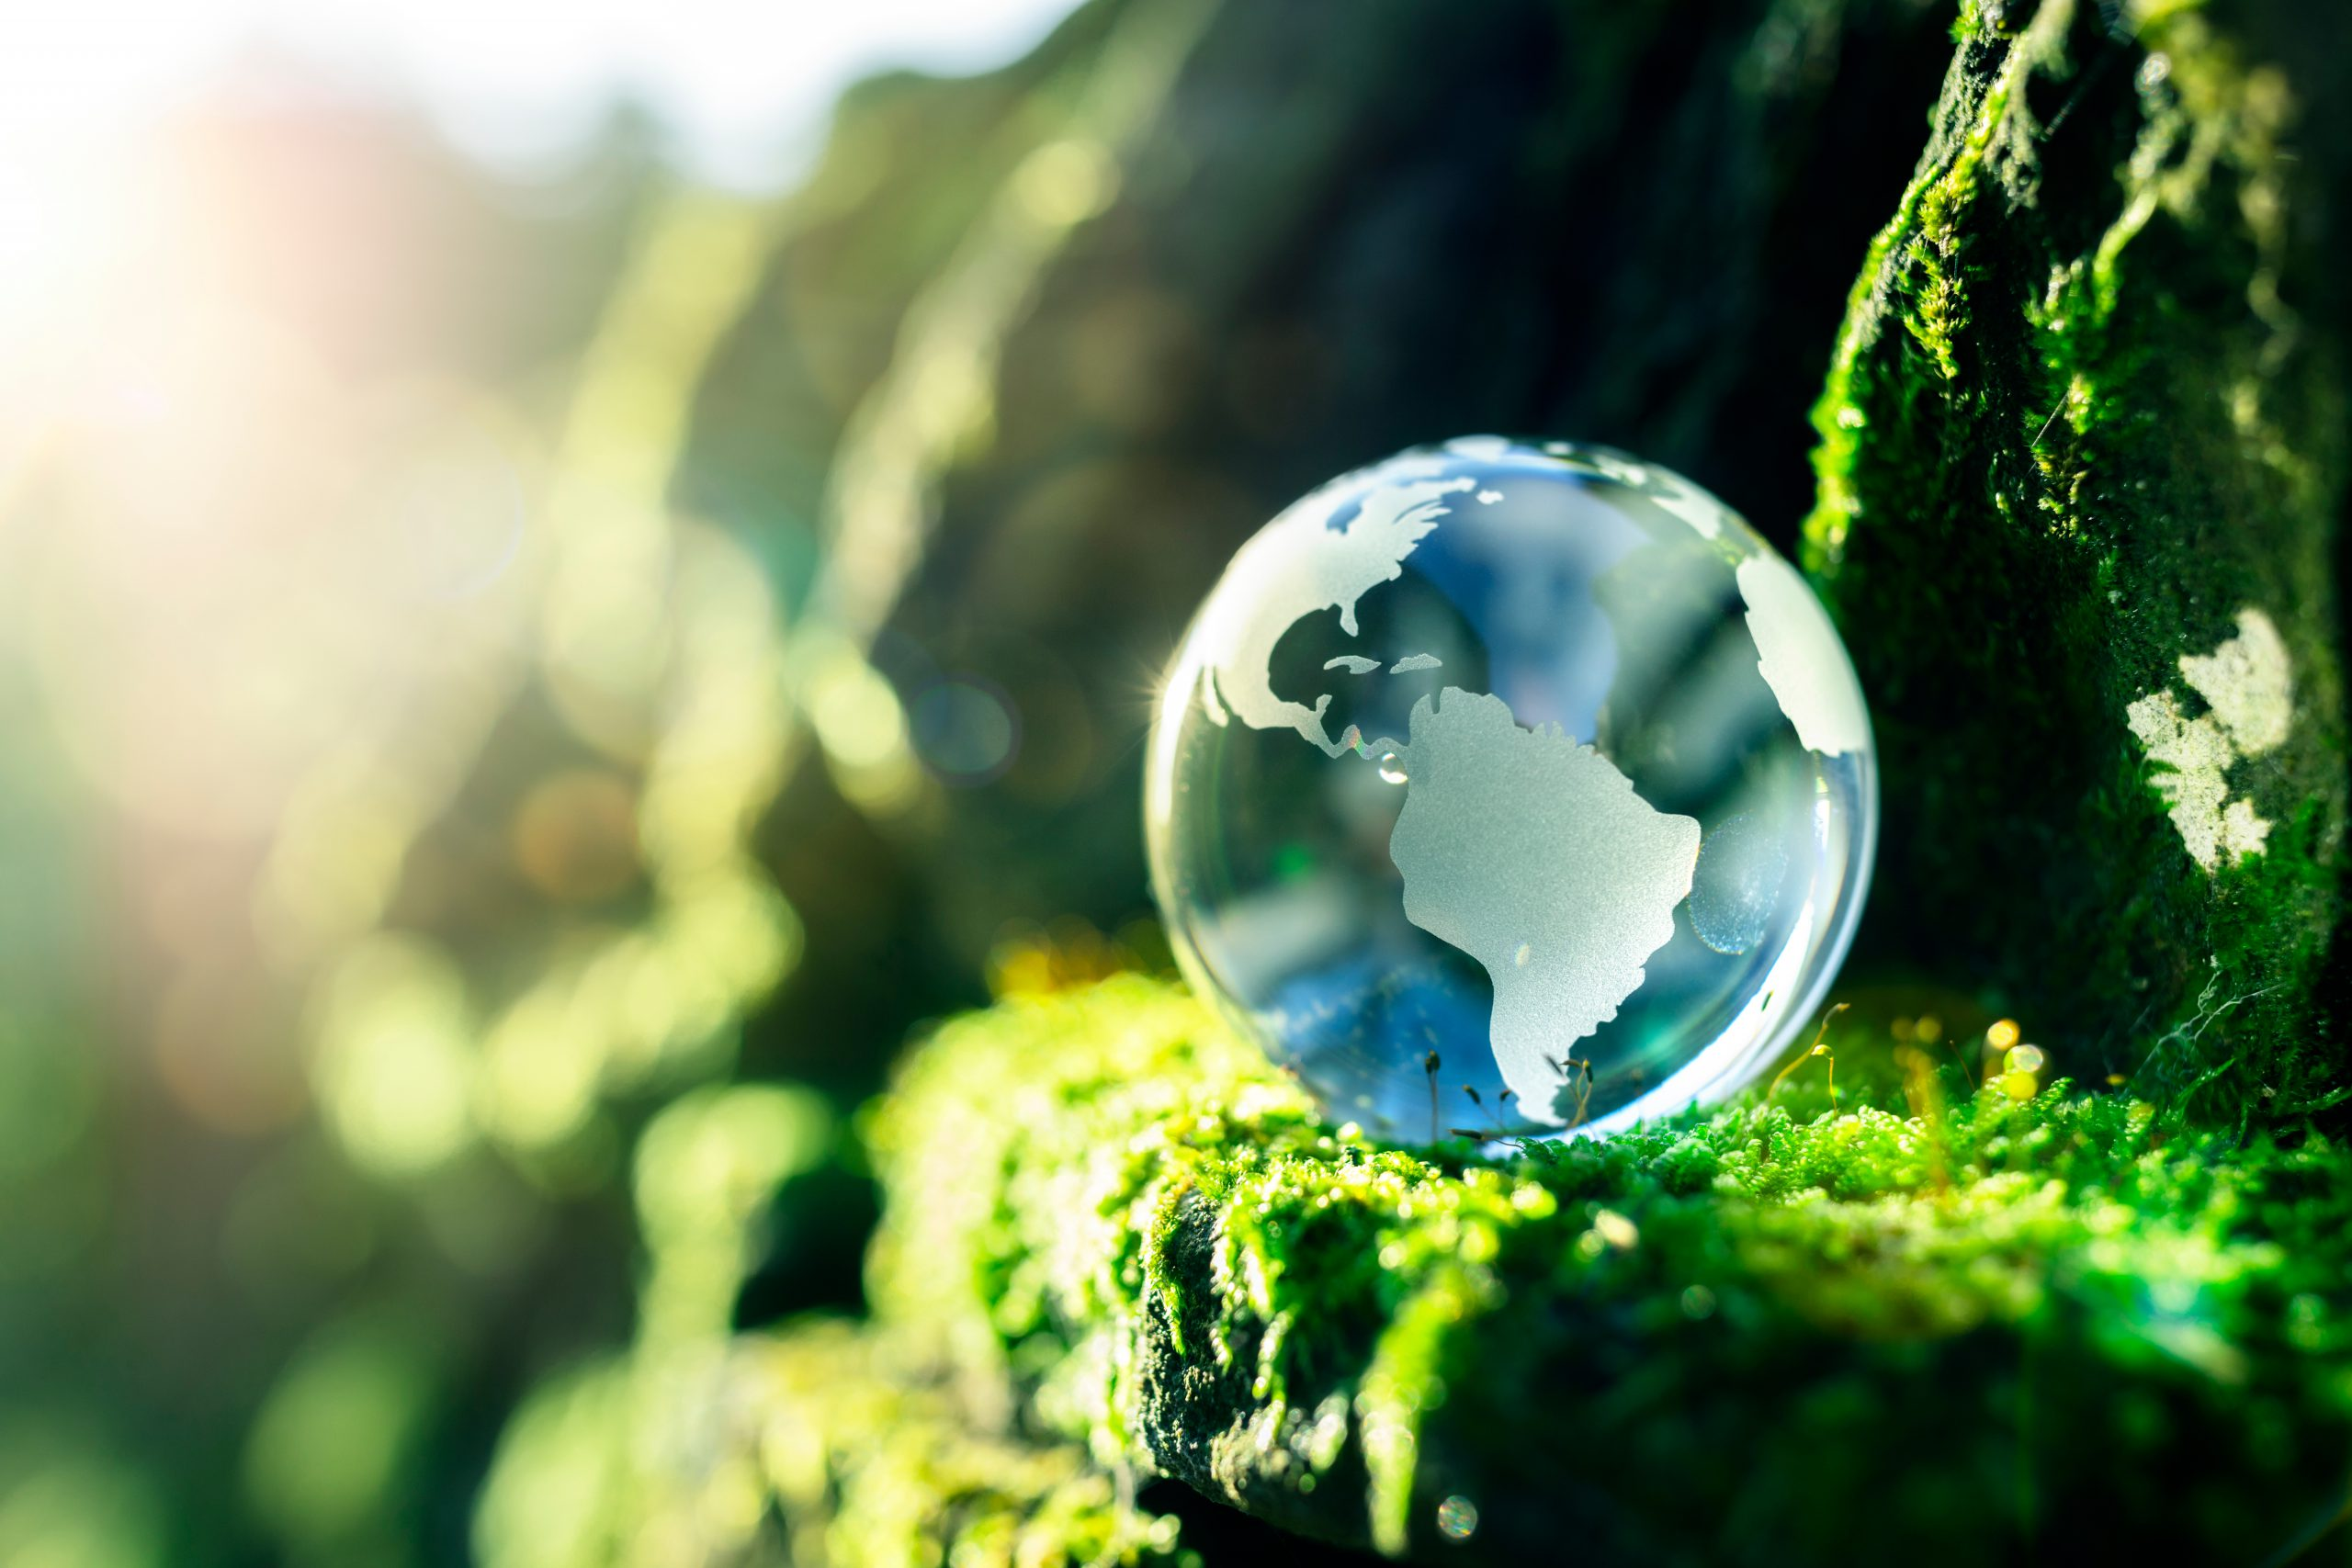 World Environment Day: Why restoring ecosystems is important